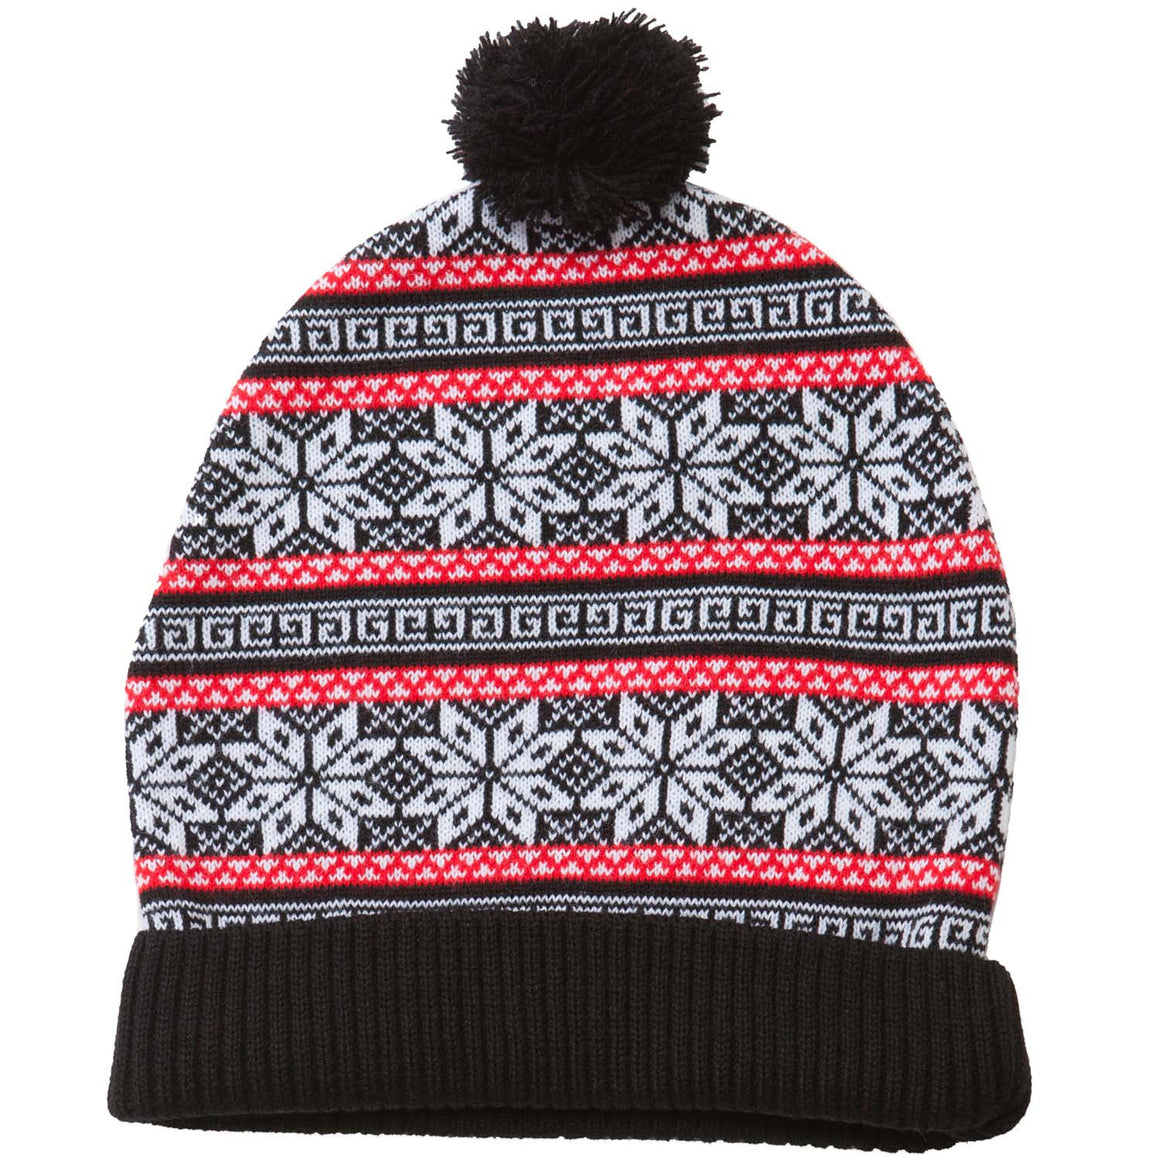 Black and red striped snowflake Christmas beanie